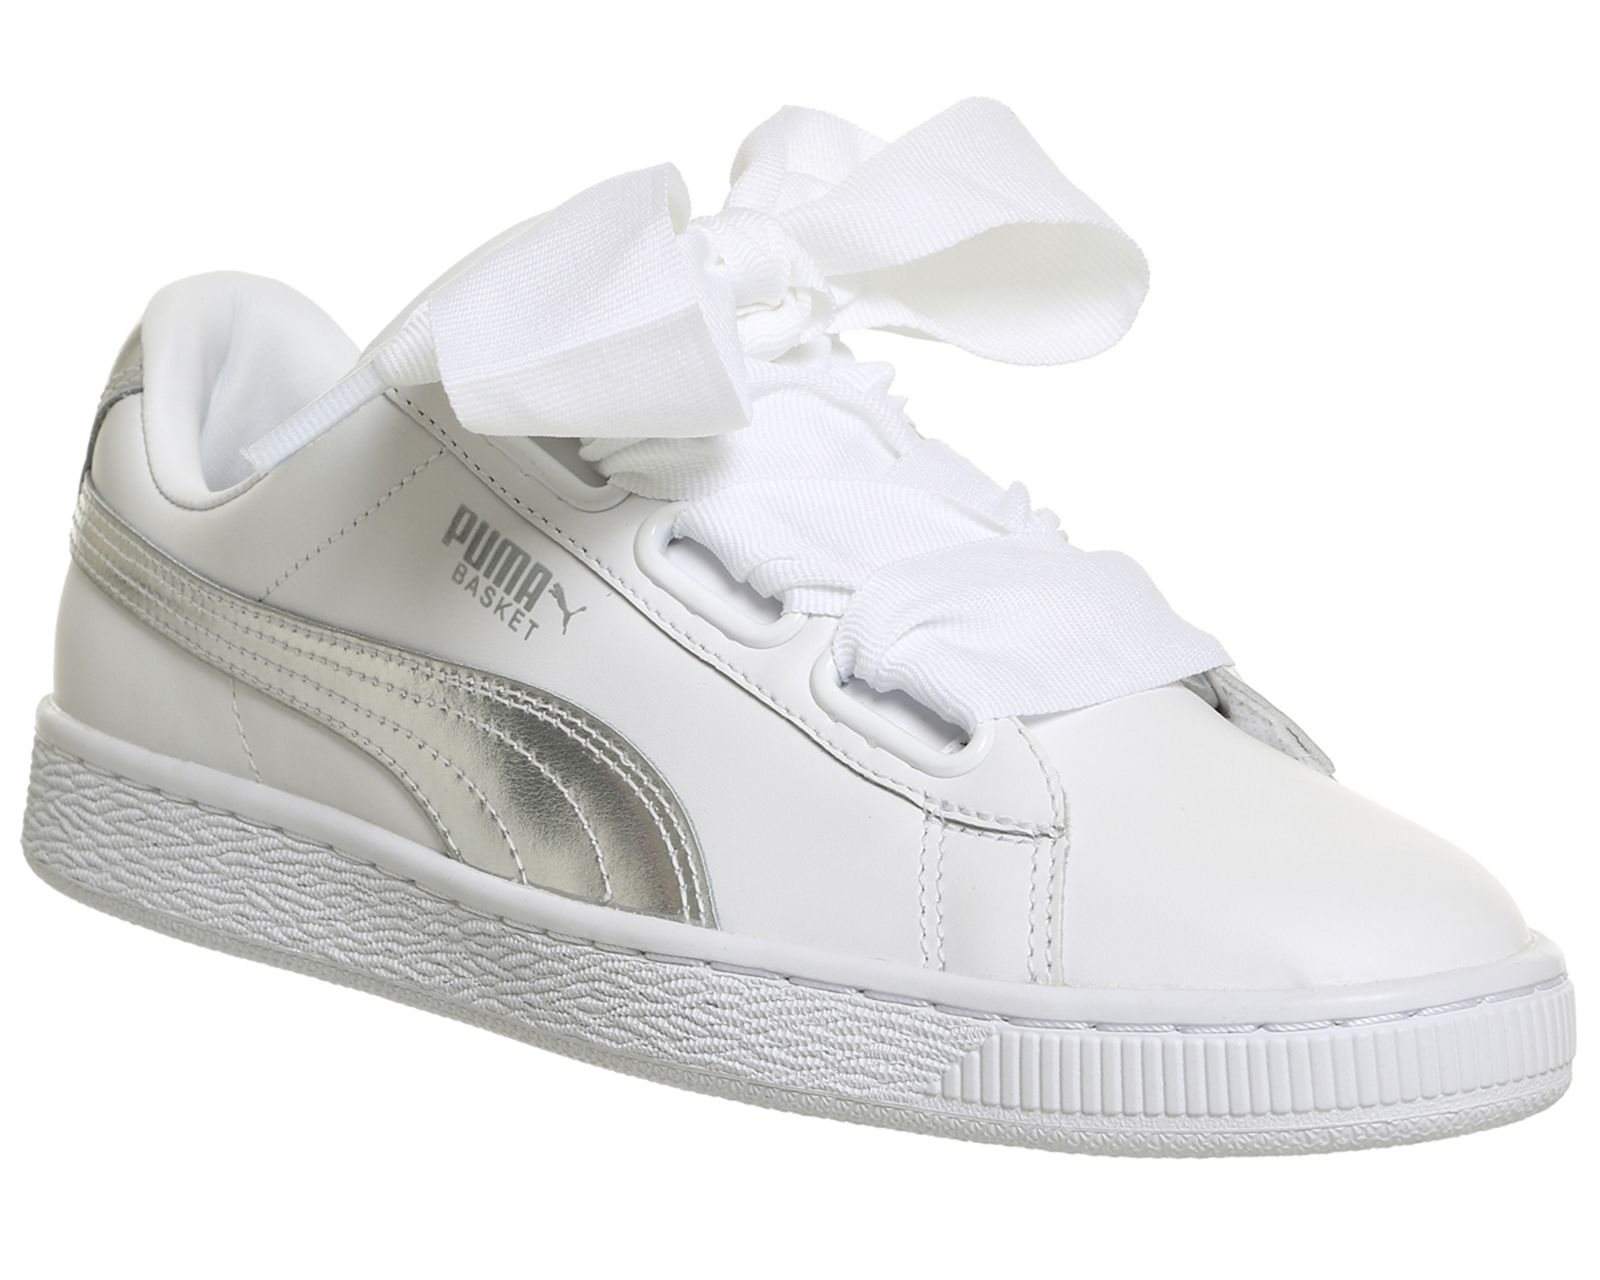 Basket Heart Trainers | Sneakers, Puma basket heart, White